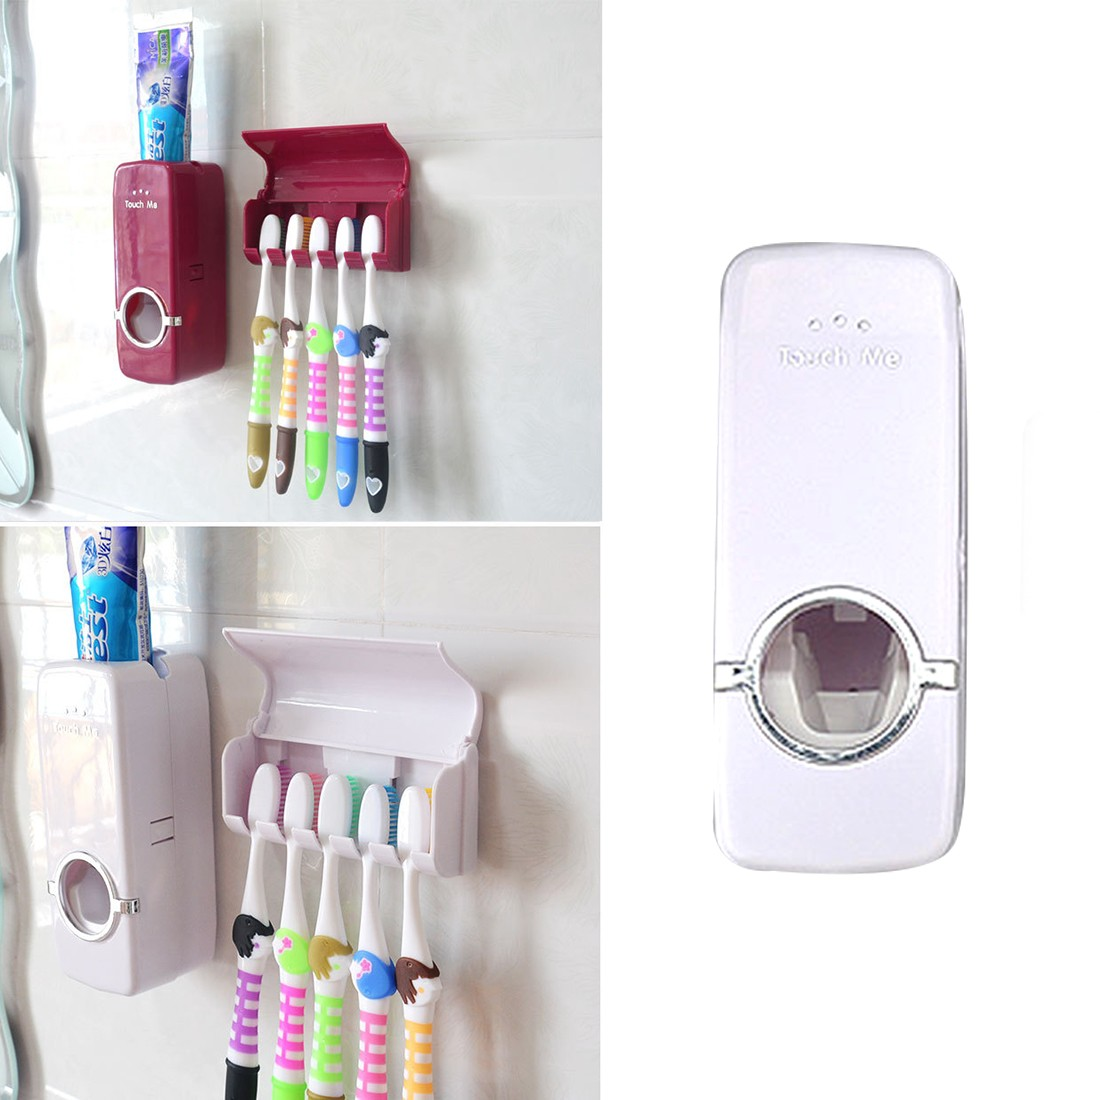 Toothpaste dispenser 5 toothbrush holder set wall mount for Cream bathroom accessories set